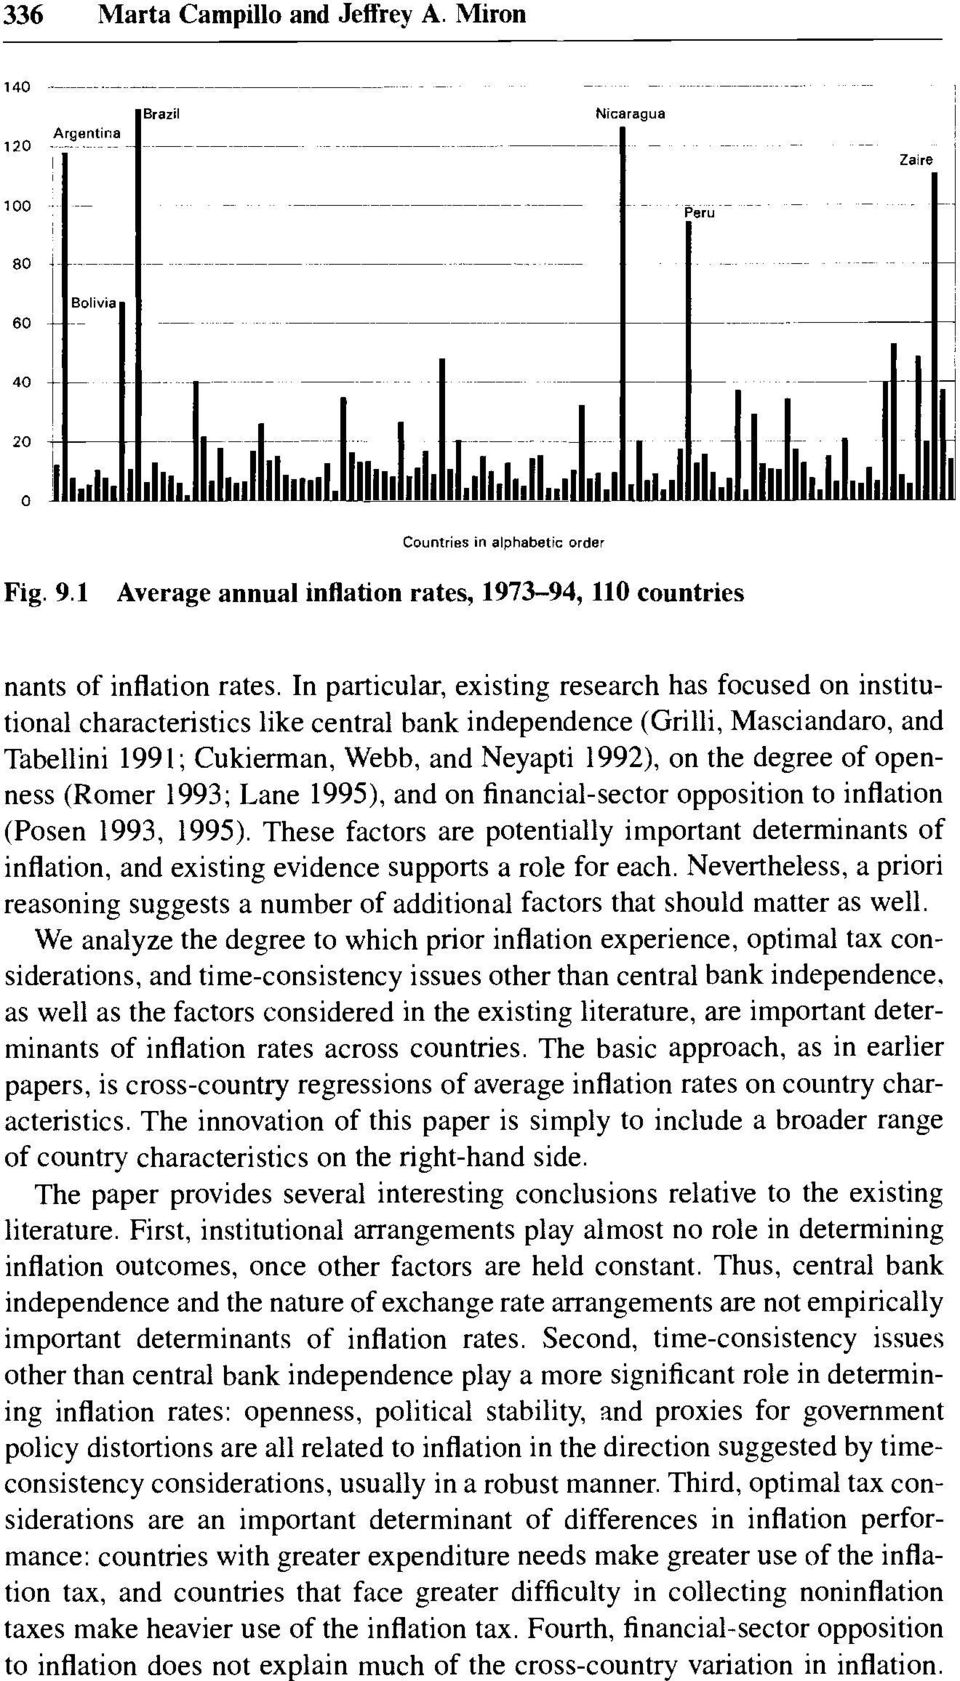 degree of openness (Romer 1993; Lane 1995), and on financial-sector opposition to inflation (Posen 1993, 1995).